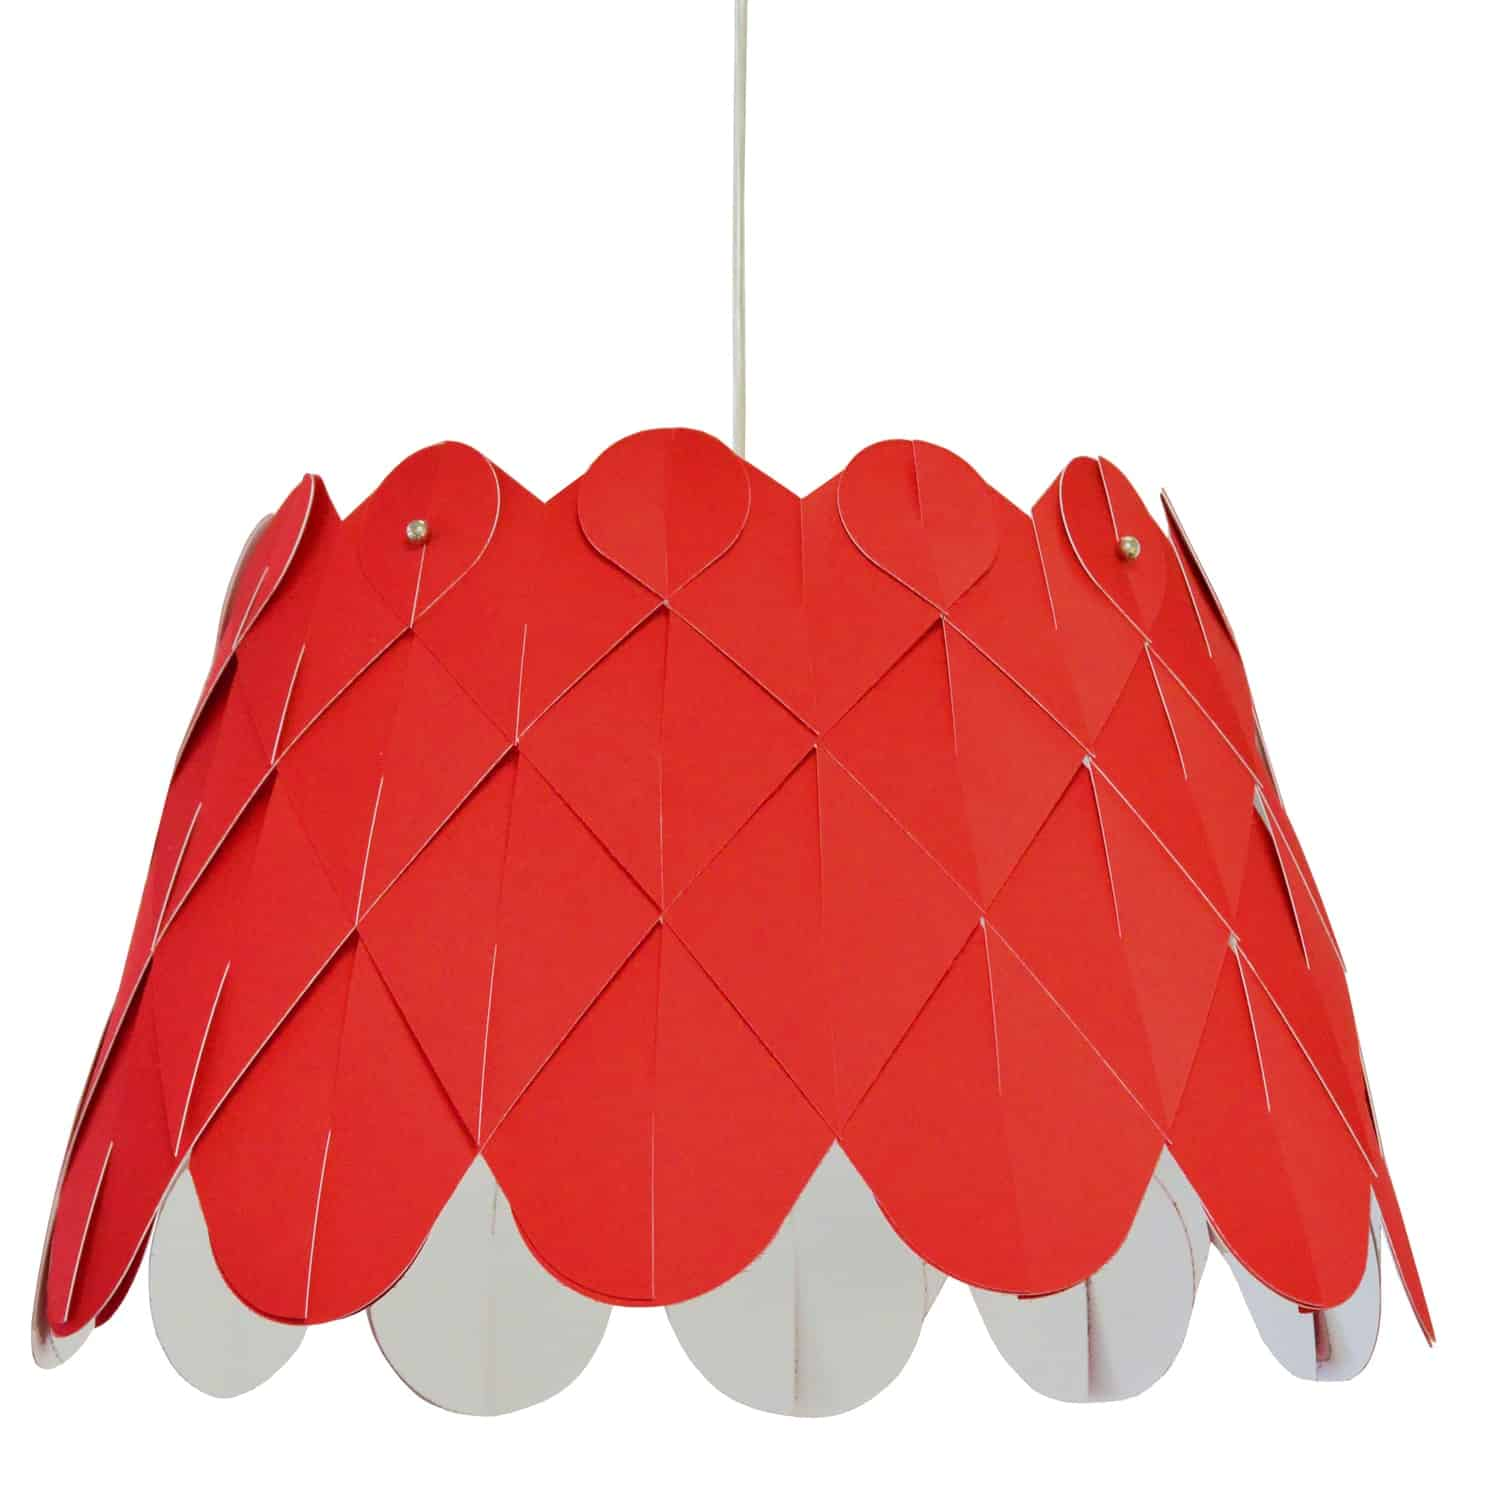 1 Light Amirah Pendant JTone Red, Polished Chrome